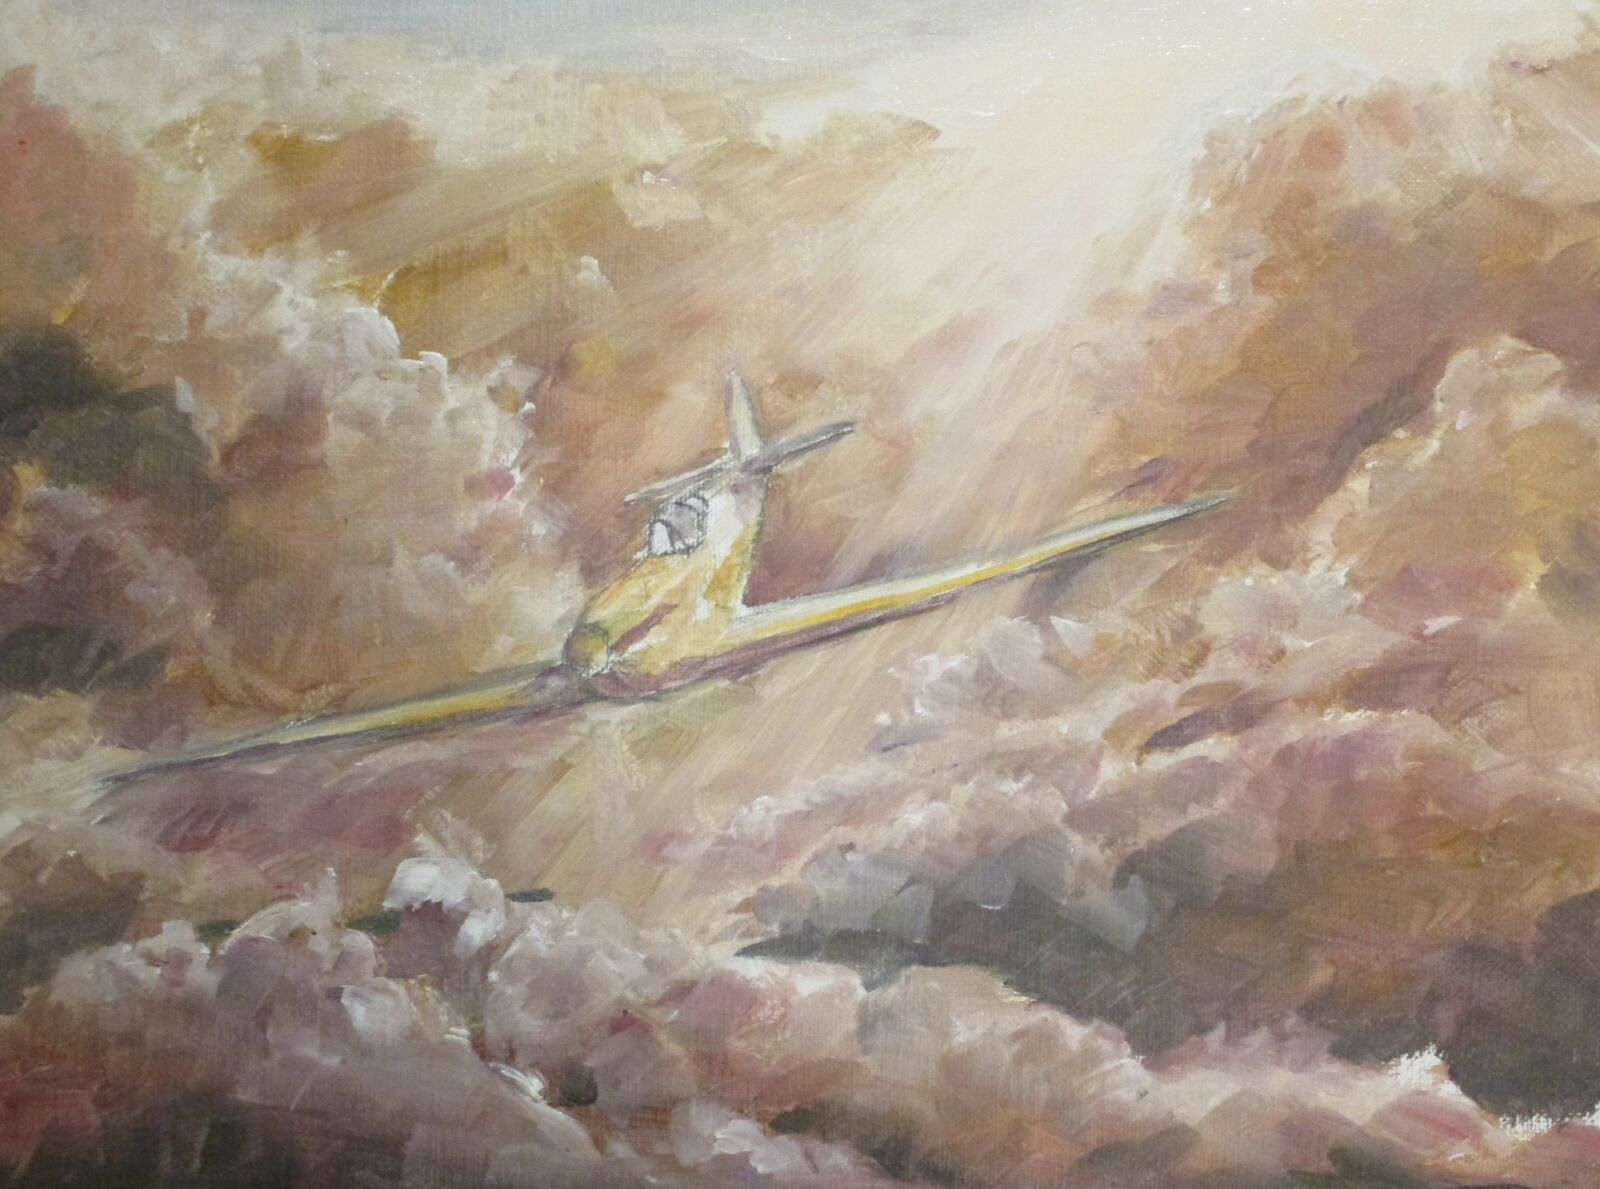 My painting of F/Lt. Bob Stanford Tuck's Spitfire near the start. You can see how a a very simple yellow/brown hue is used to establish the light and dark areas of the work.